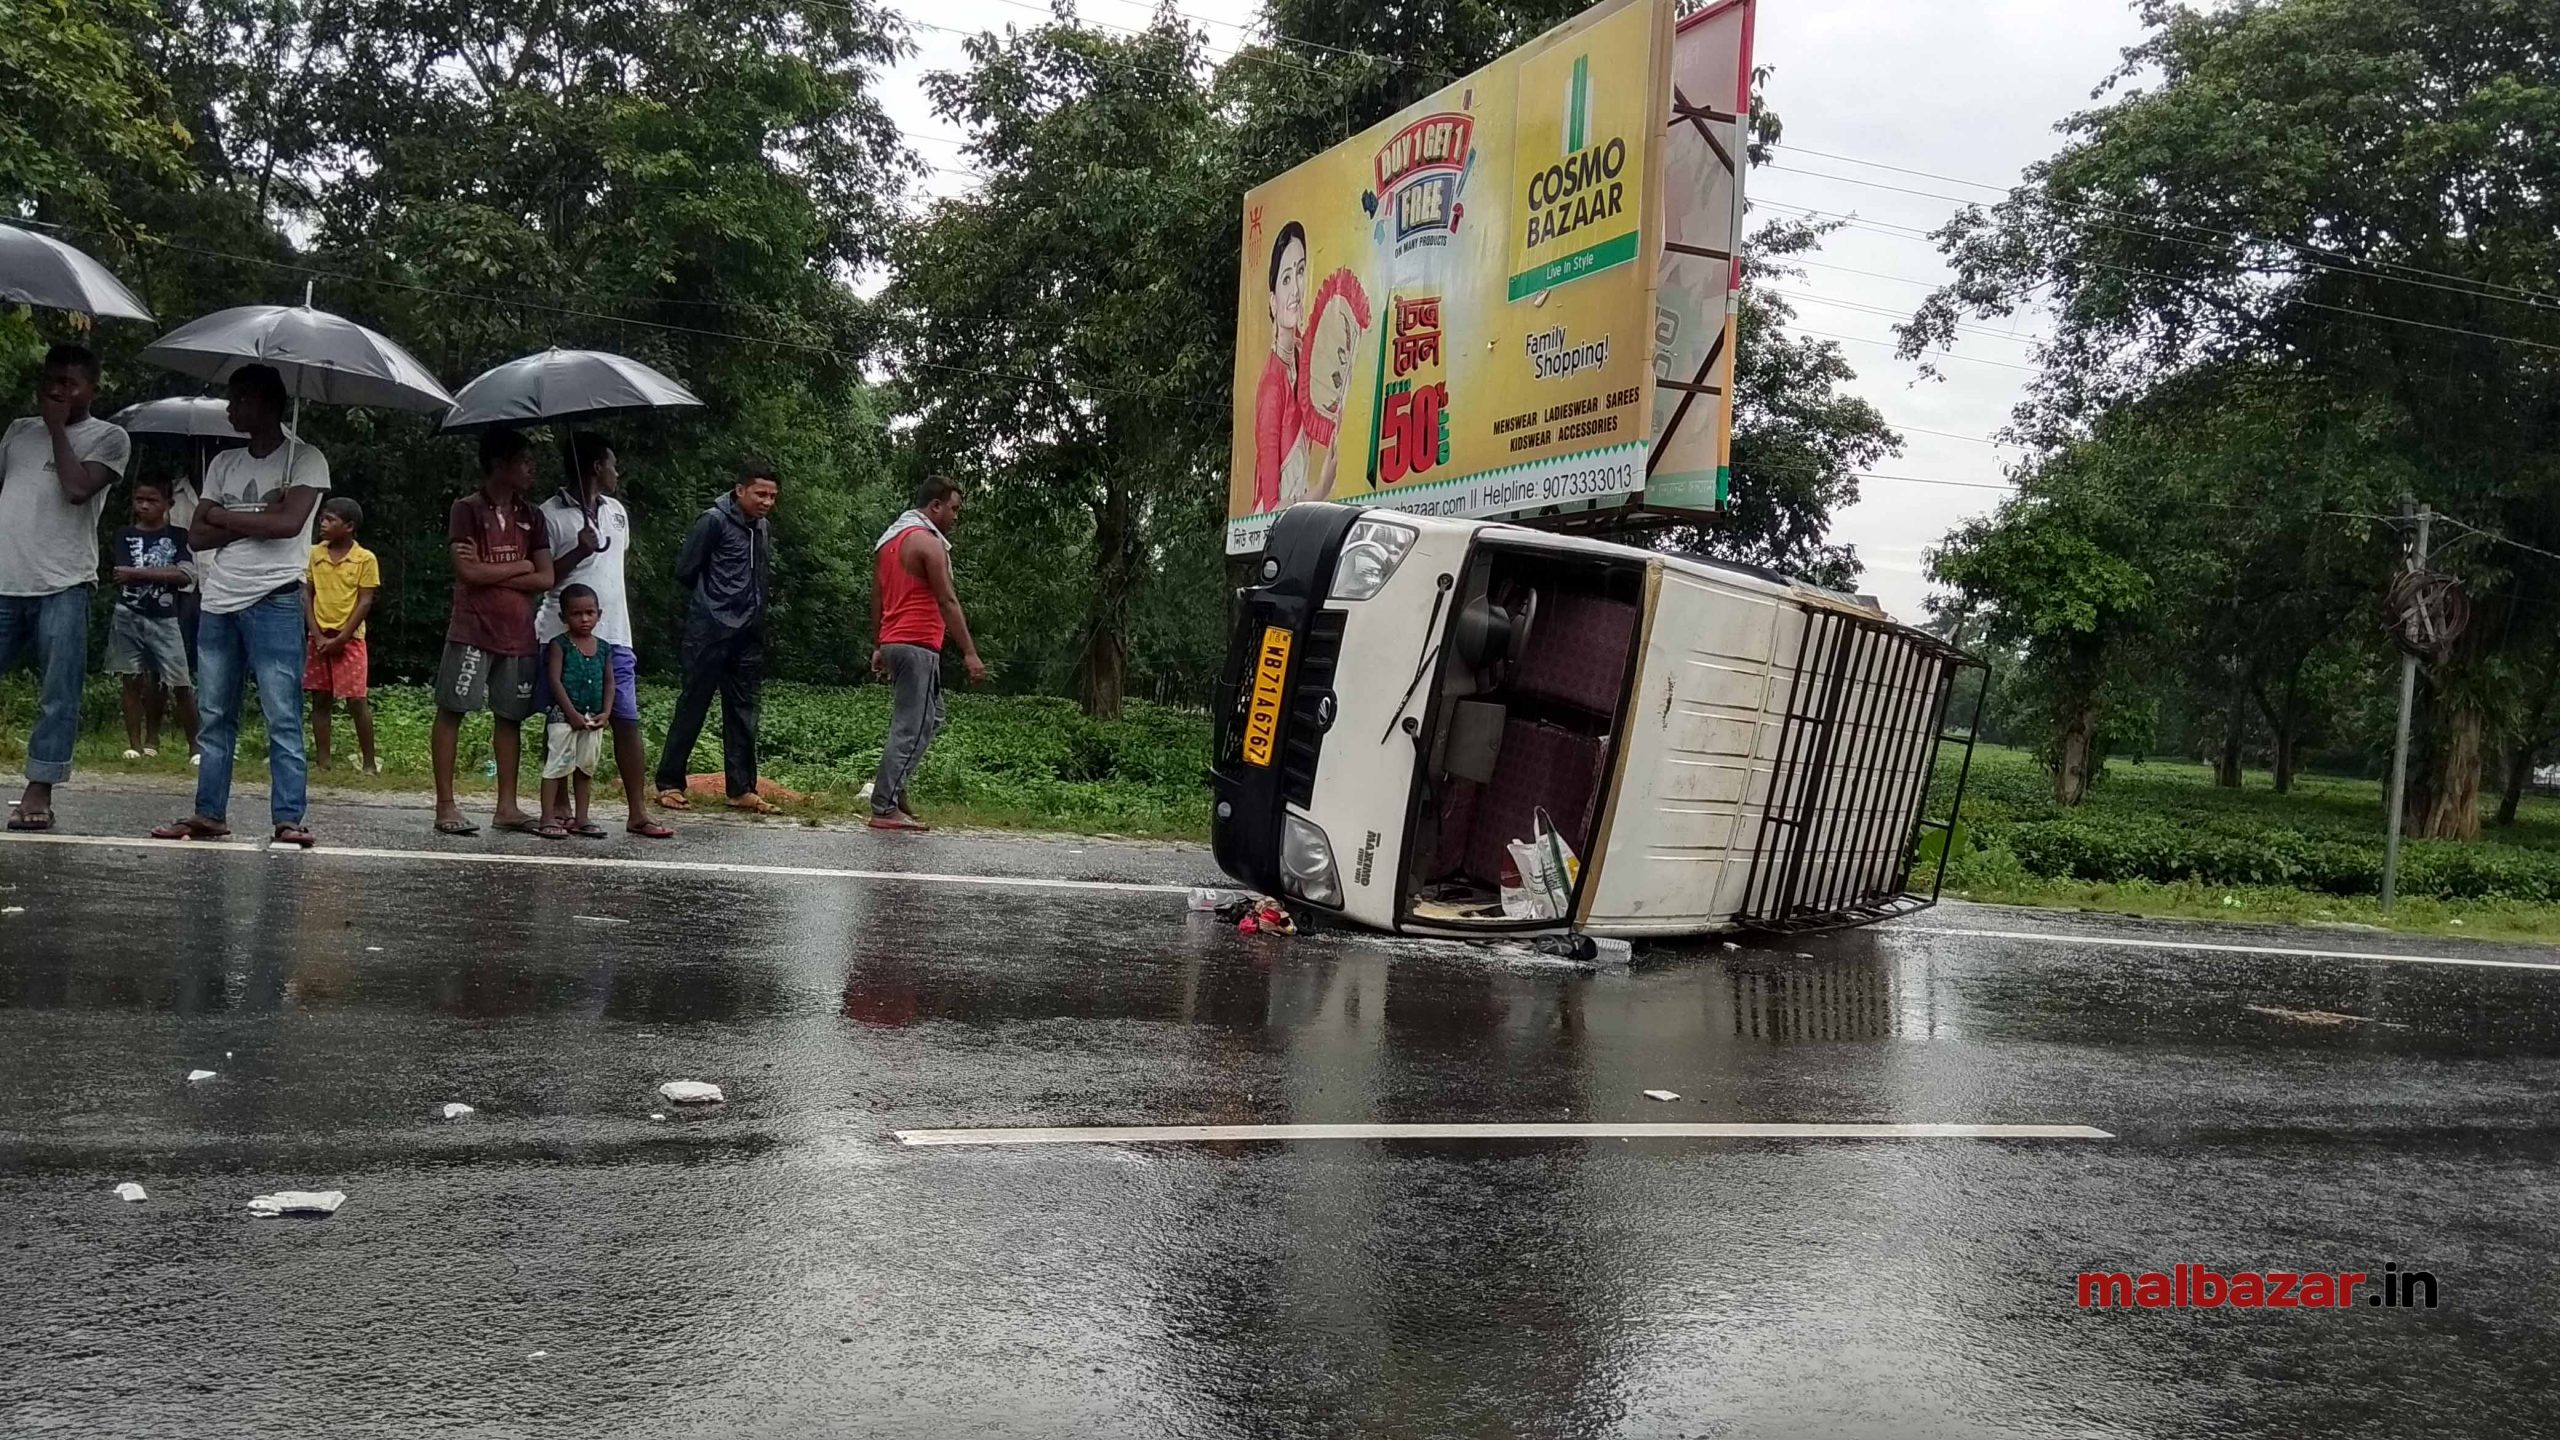 24 July, 2018 Road Accident, Malbazar(6)